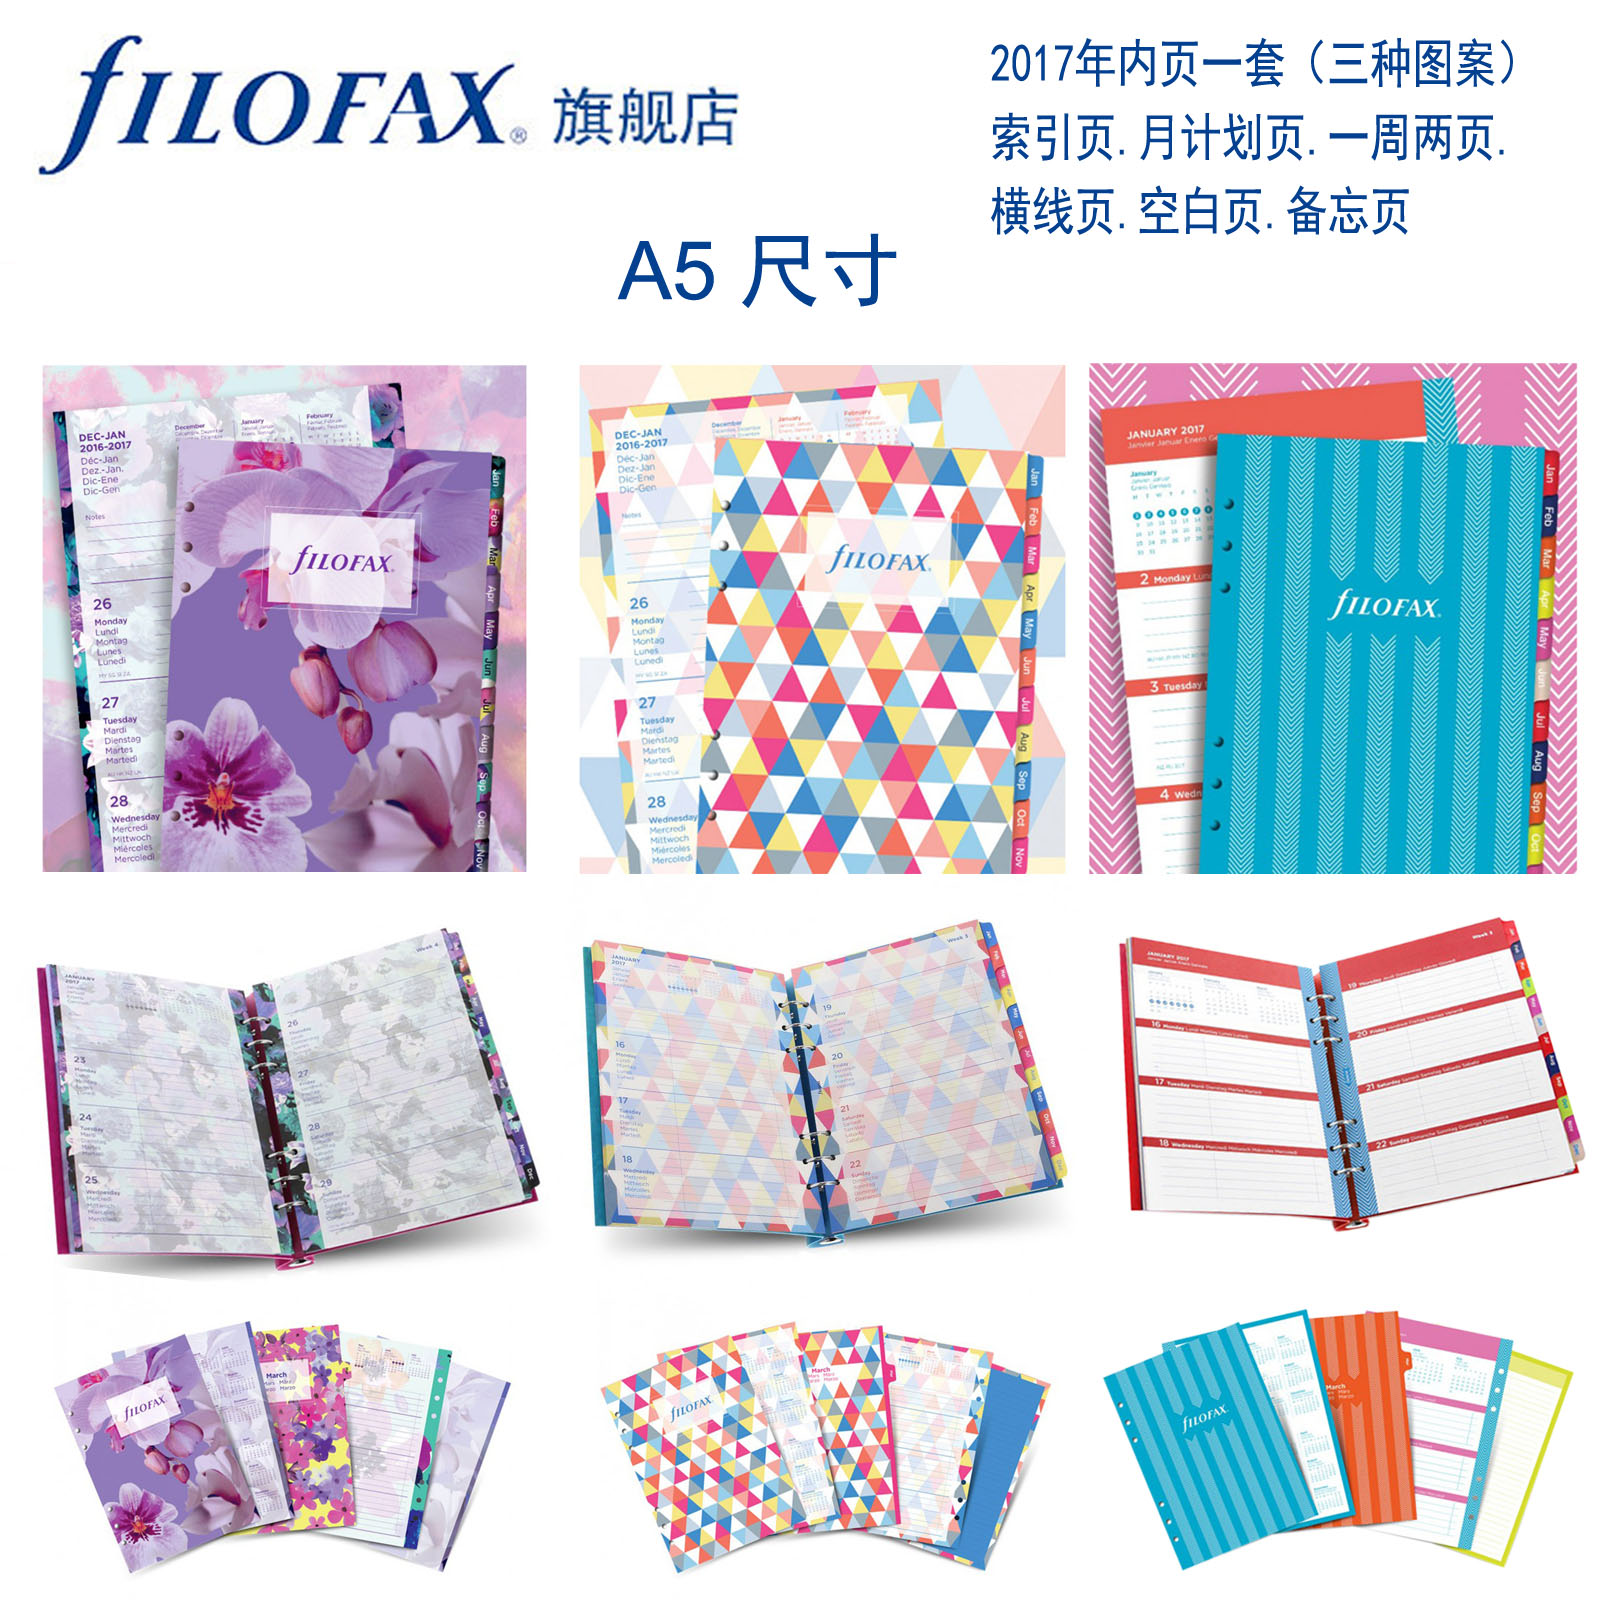 Filofax to shi fei it is true 2017 limited edition version of a set of one week two page leaflet inside pages for the core